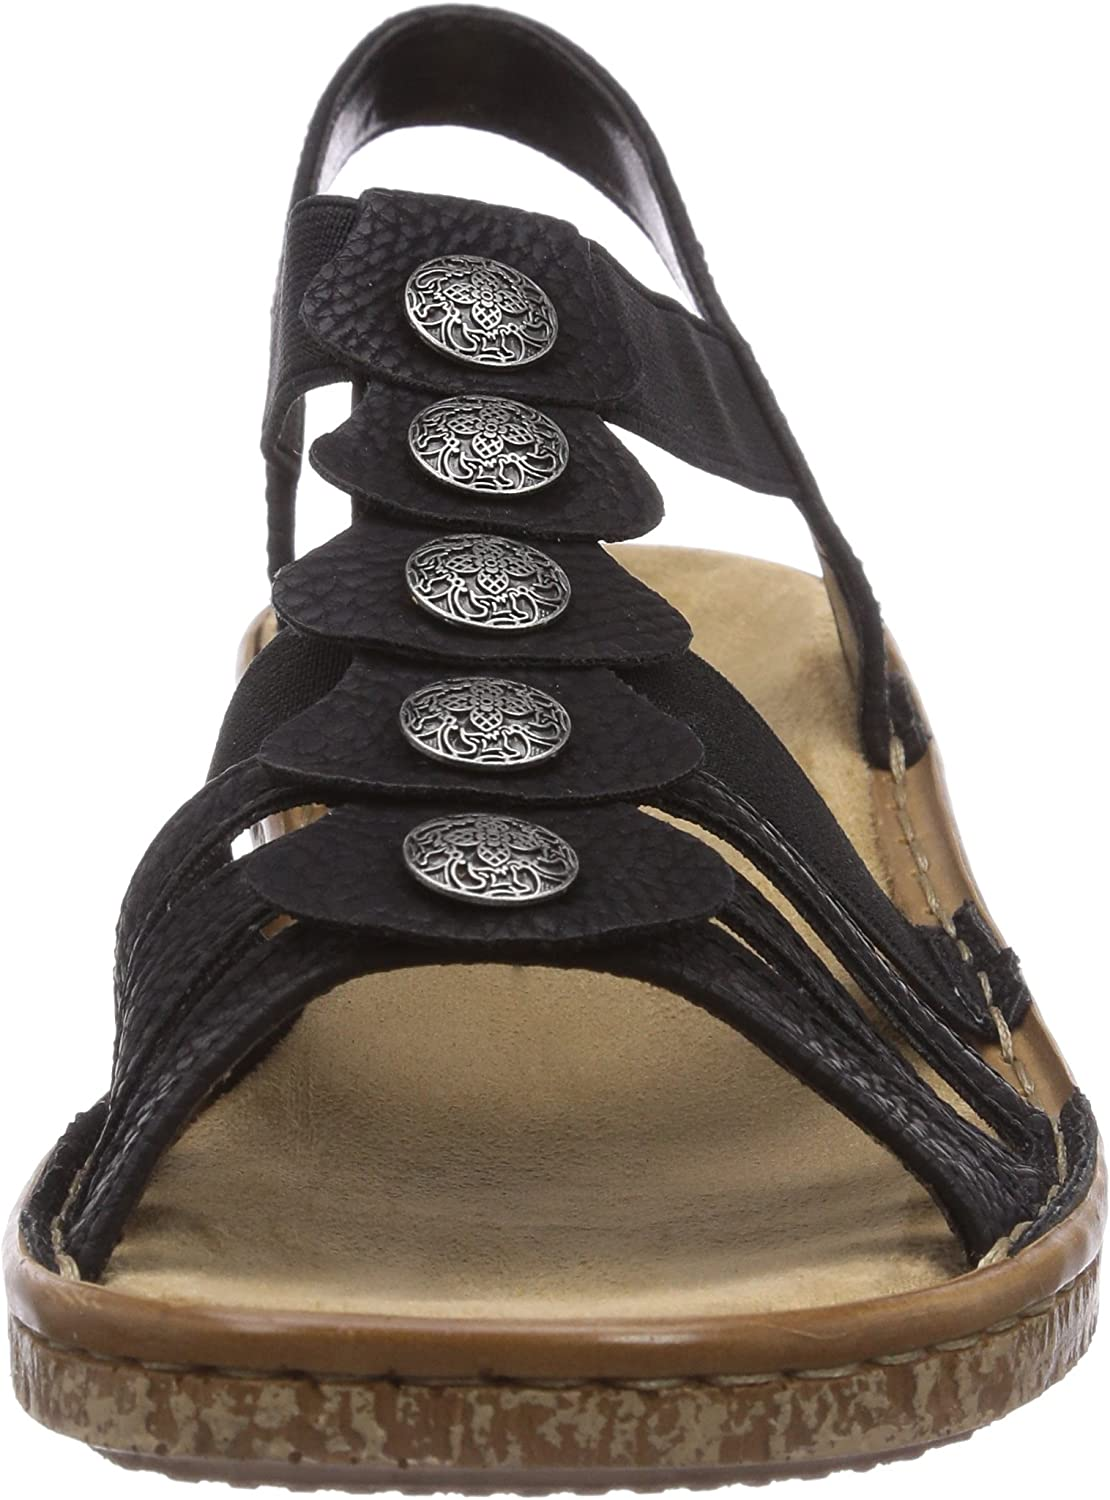 billigt för rabatt gymnastikskor rabattkod Rieker Women Sandals 62866, Ladies Strappy Sandals: Amazon.co.uk ...